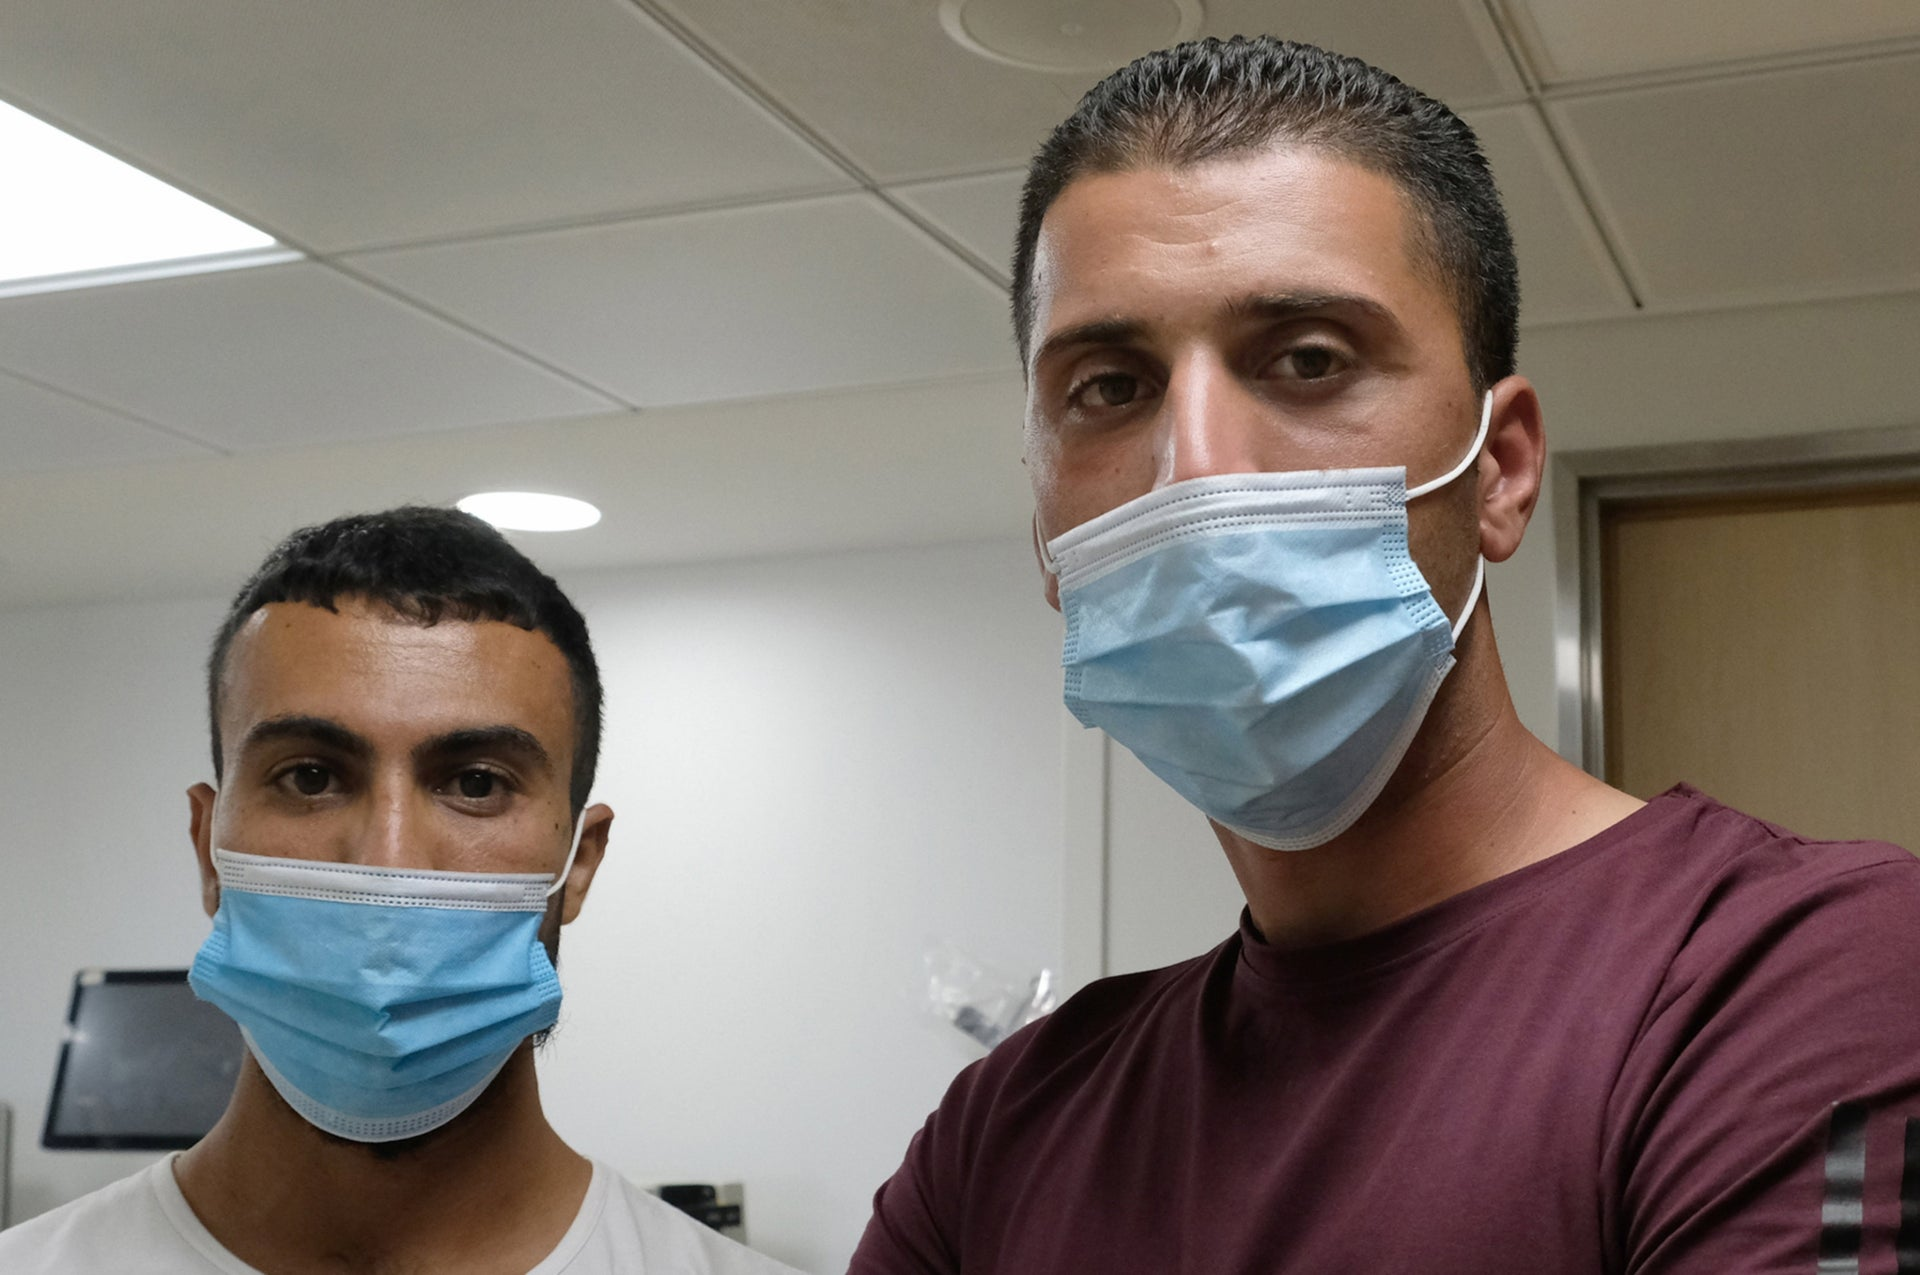 Anas Jabarah, left, brother of Abd al-Rahman, shot by Border Police, with Amid Hamadan, whose sister Tala was due to marry the wounded man this month.